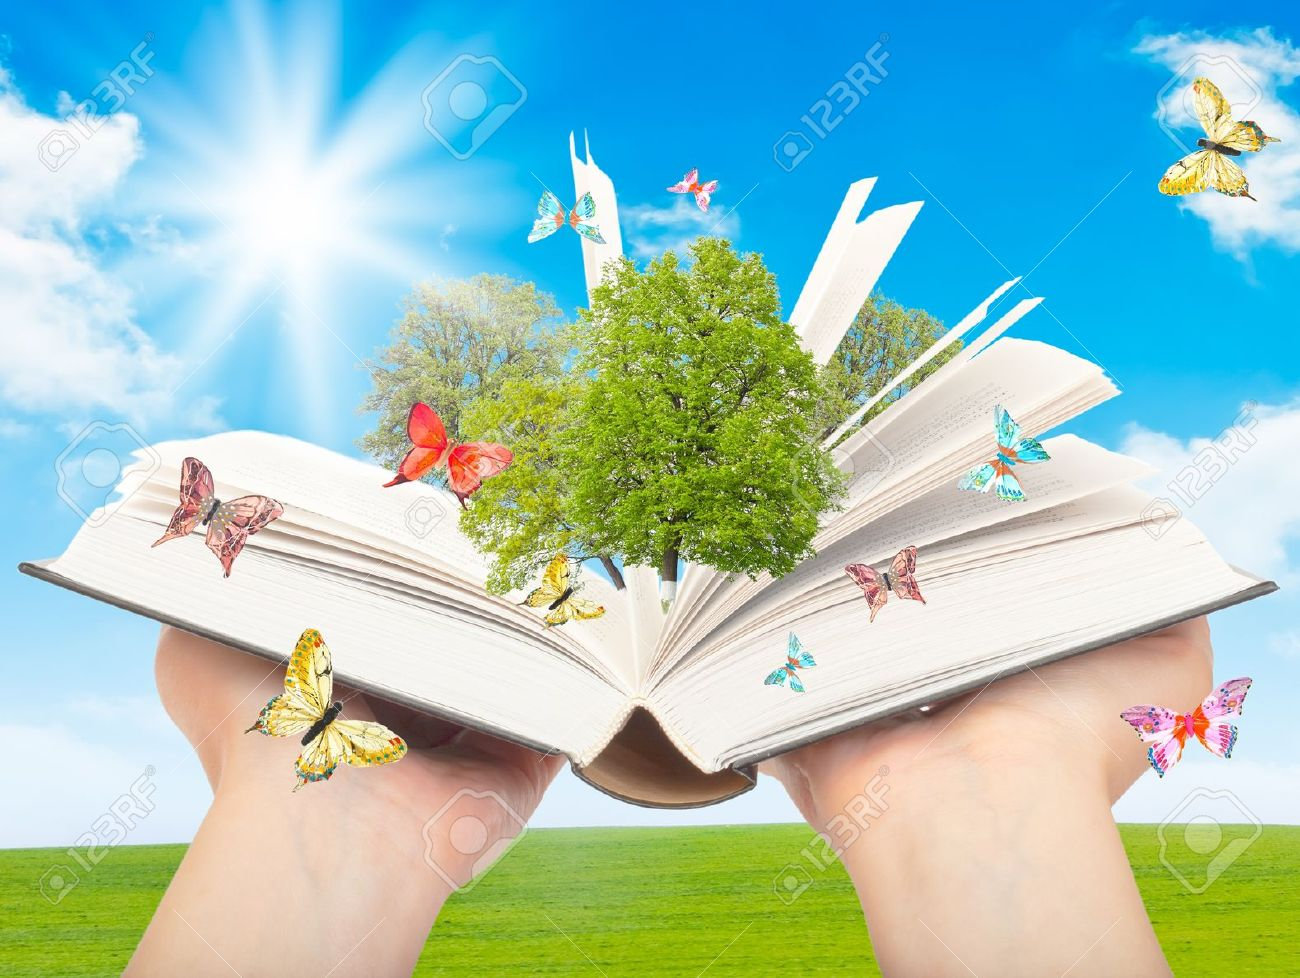 Magic book in human hands with a green tree and the rays of light